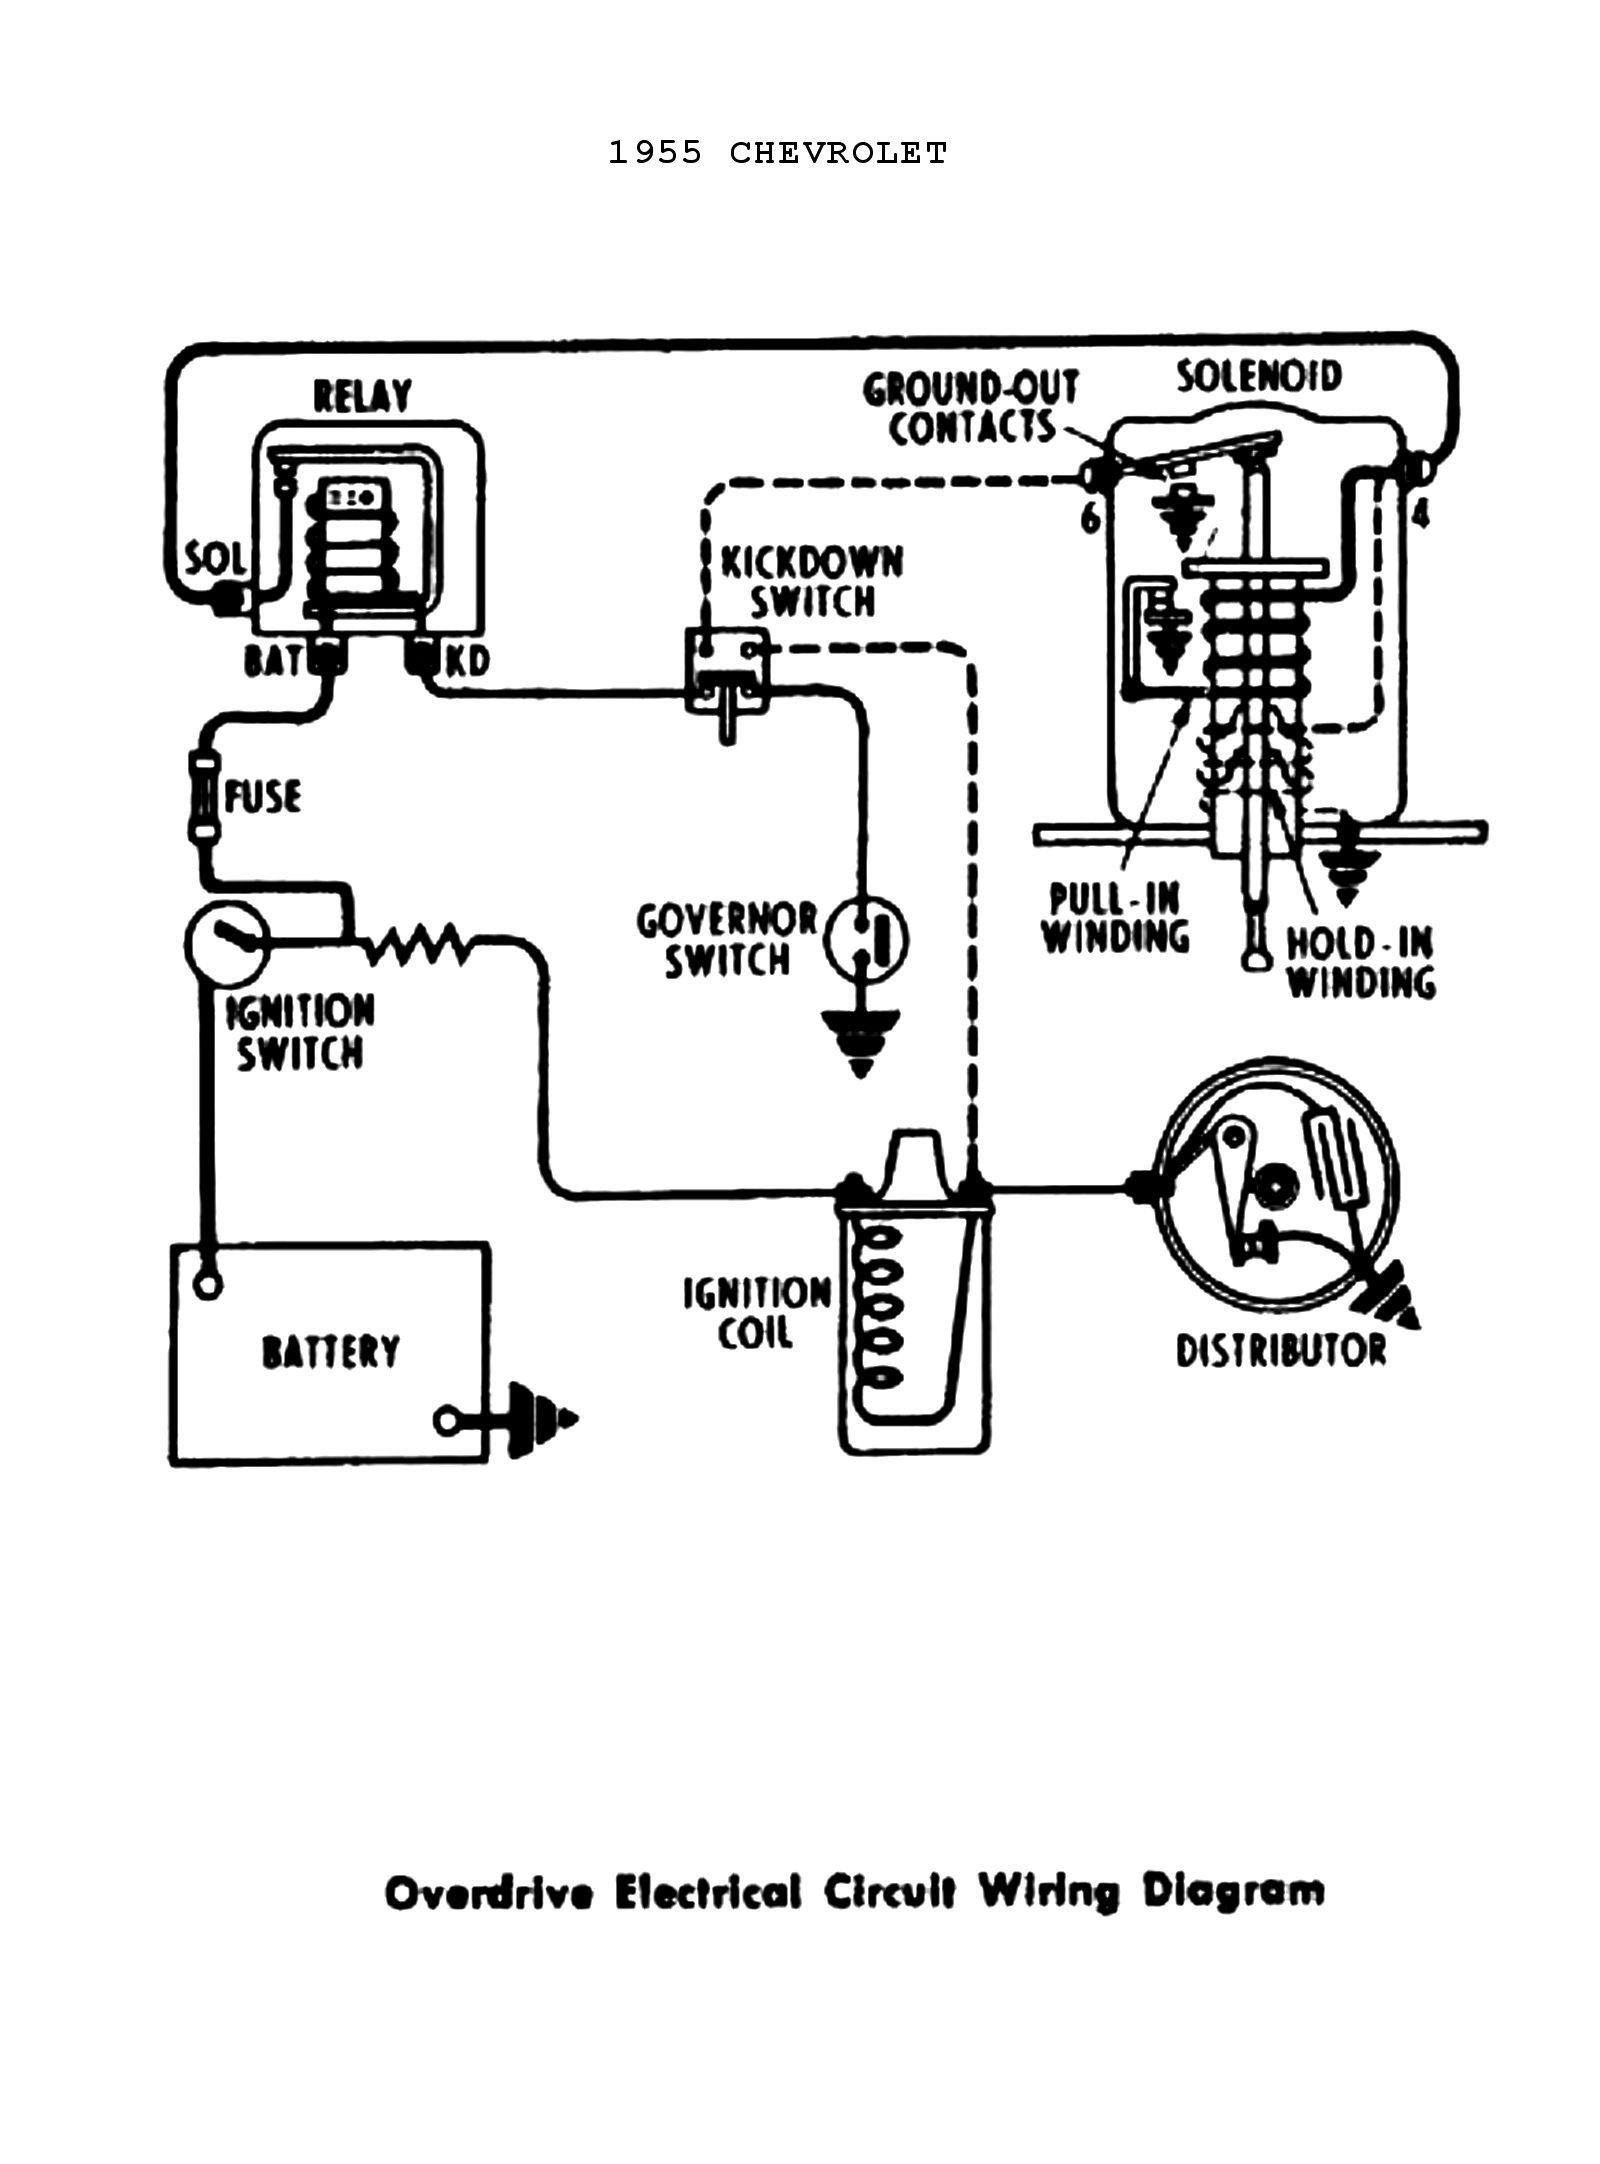 Mack Truck Fuel System Diagram 1955 Chevy Tank Trucks Wiring Ignition Of